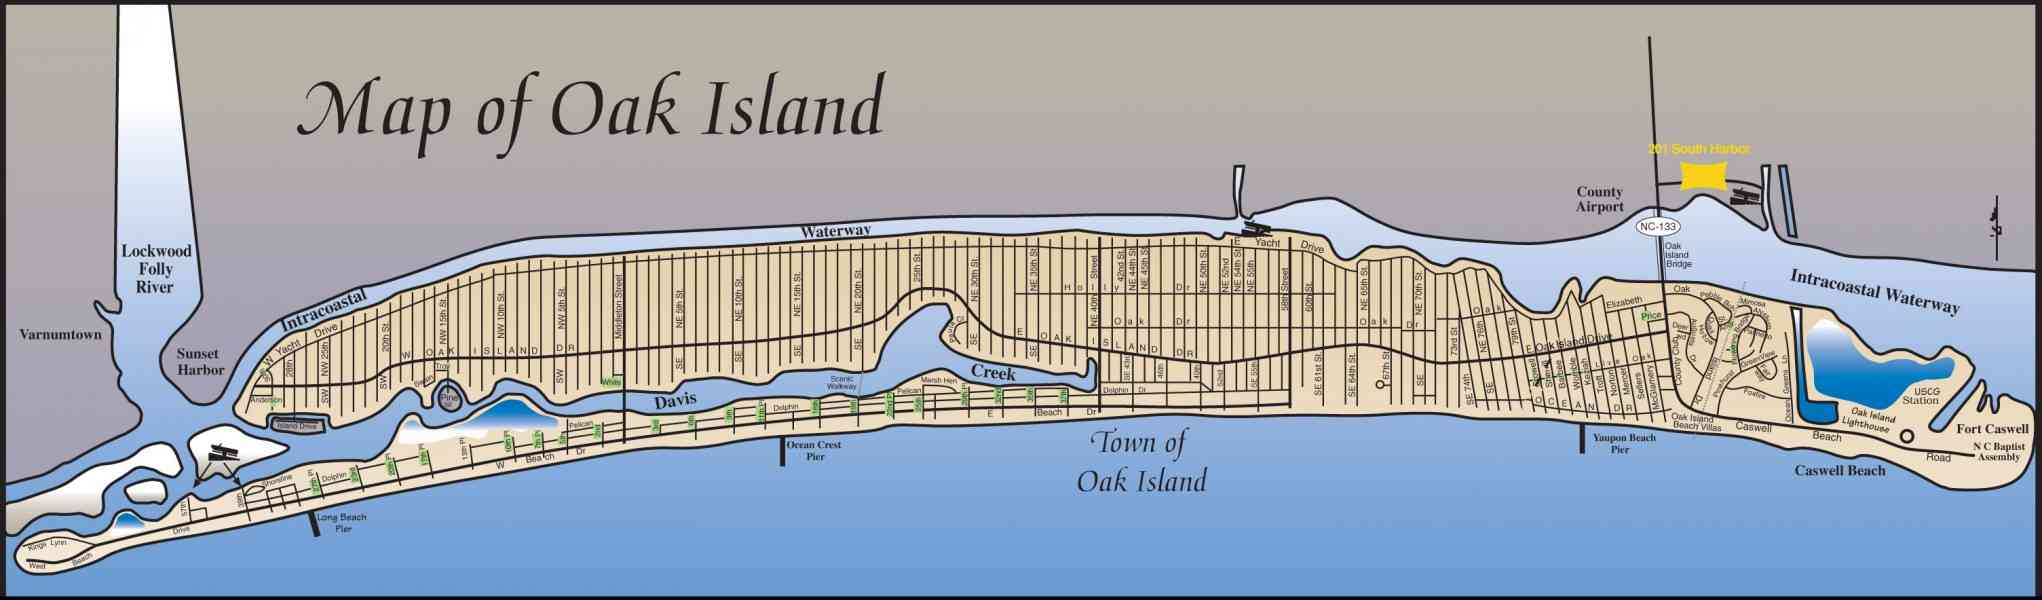 map of oak island 372 Map Of Oak Island